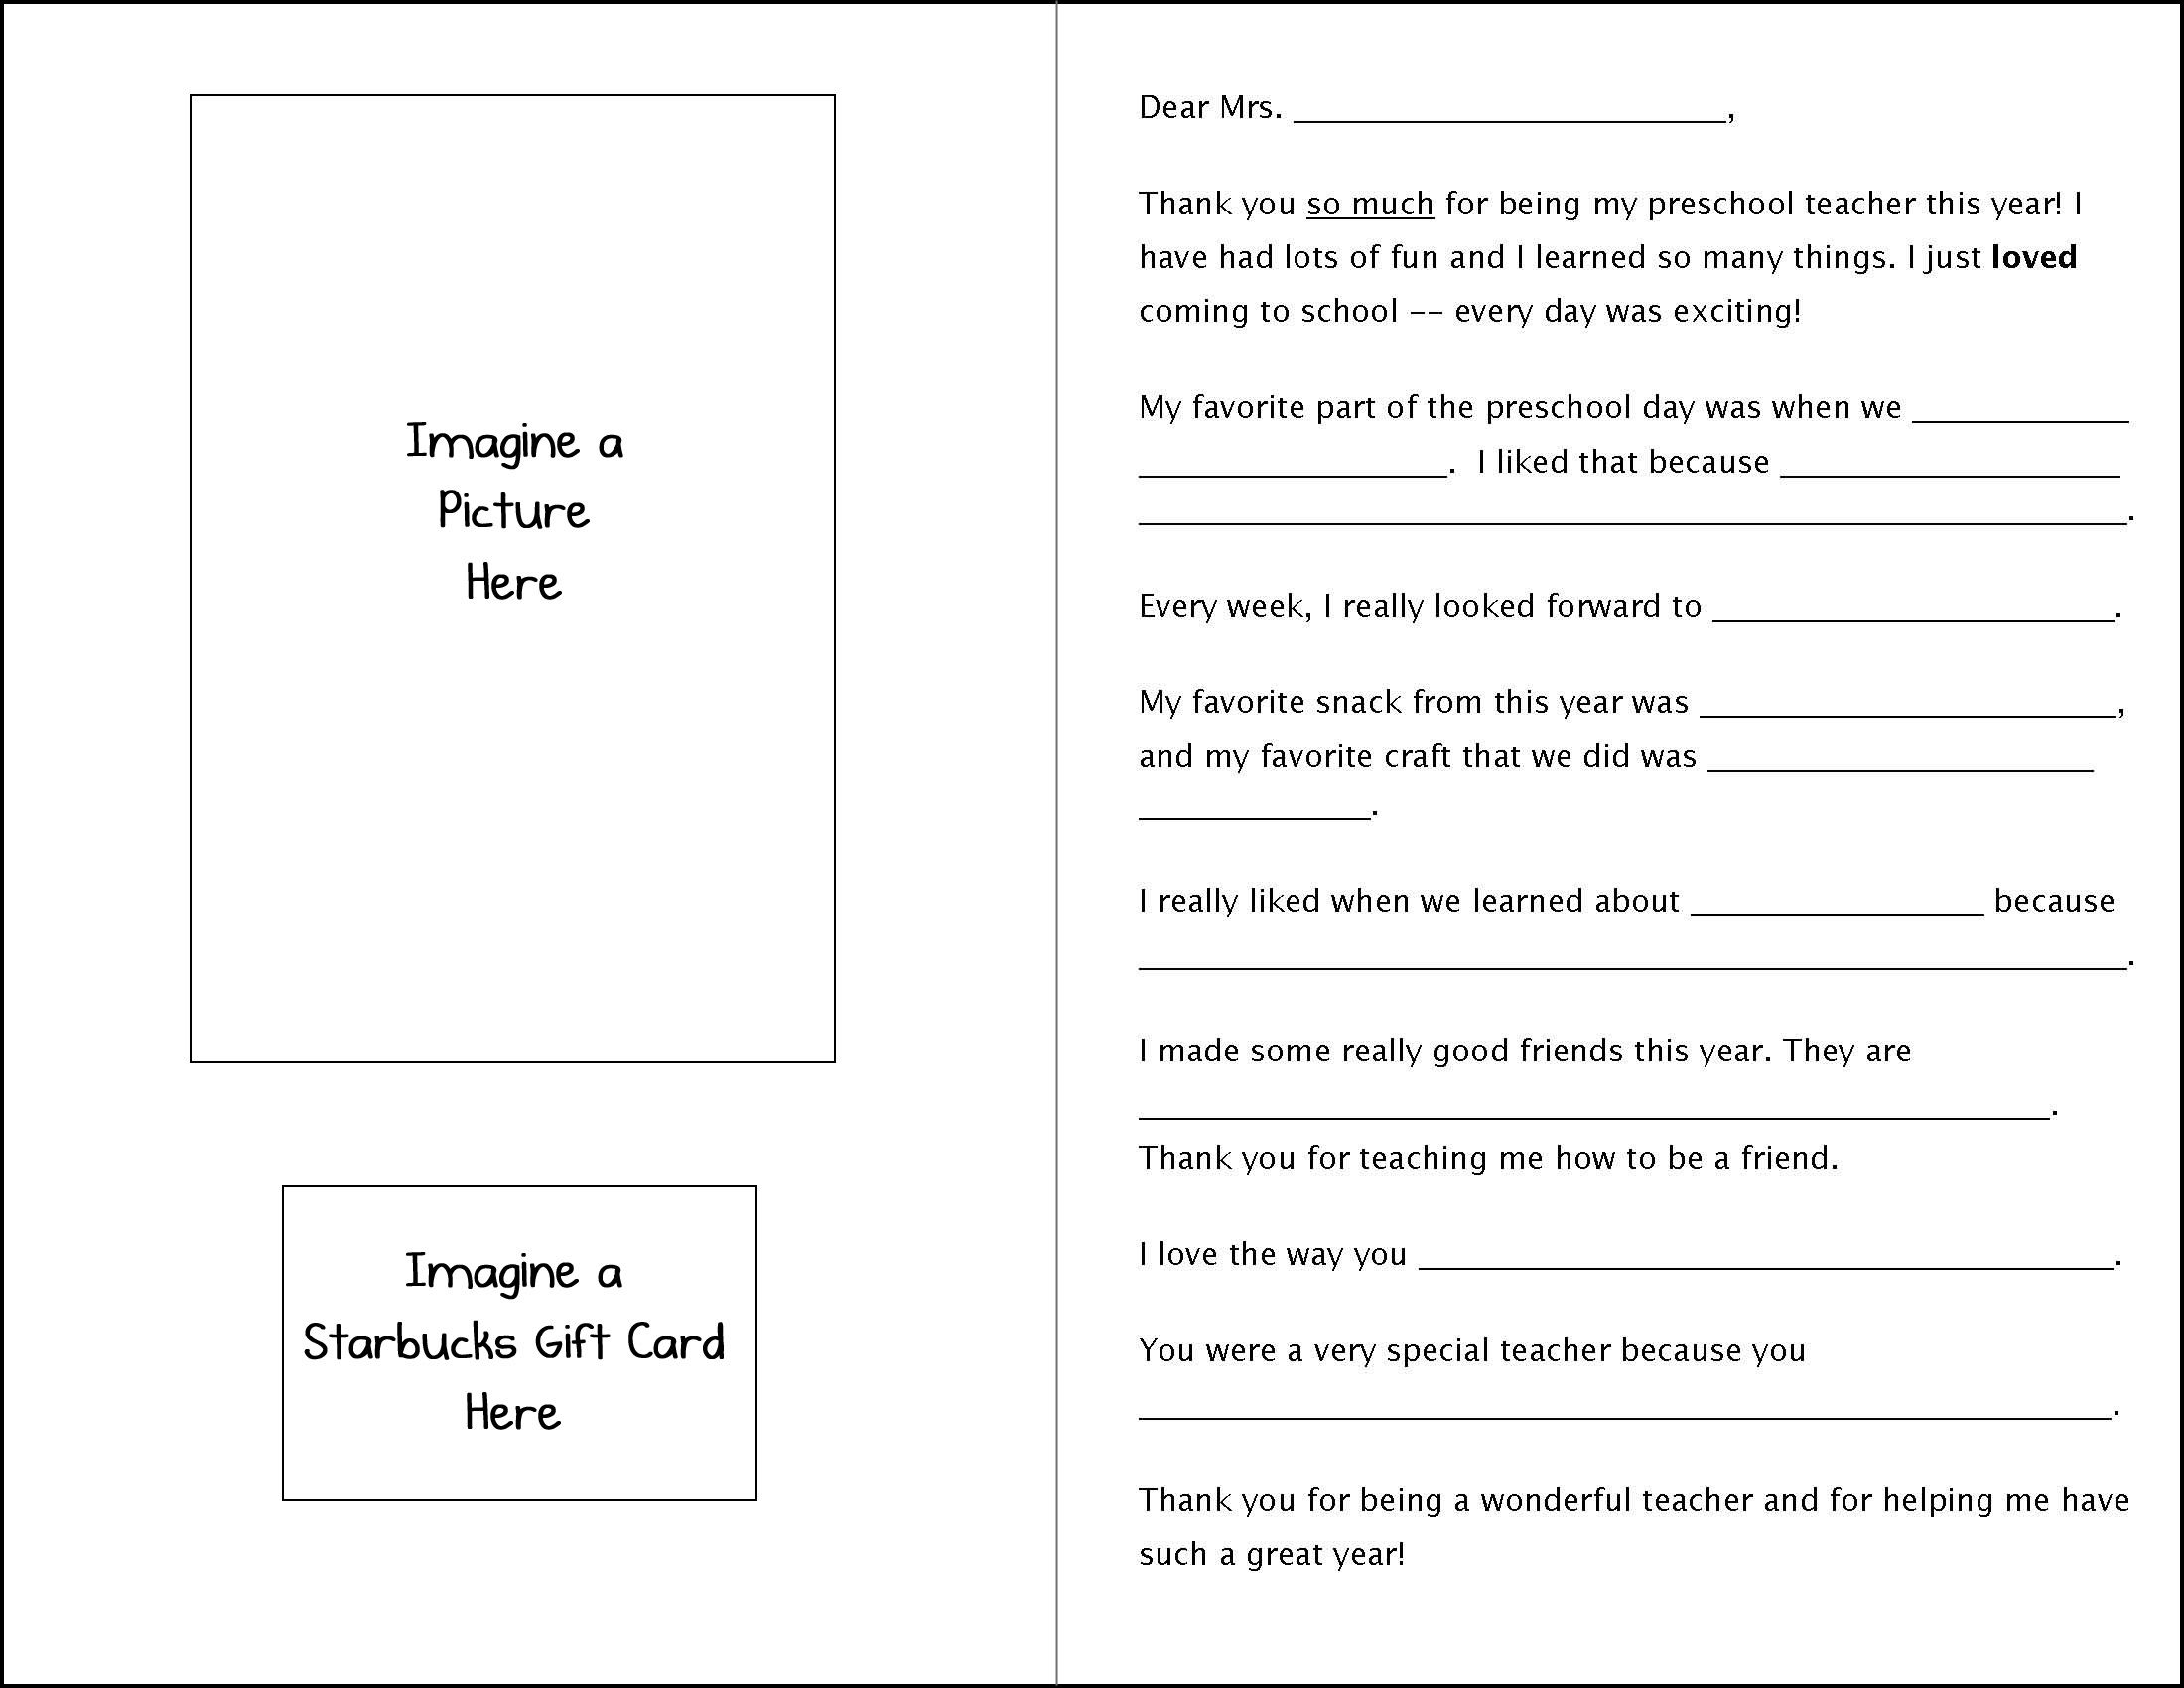 Fill In The Blank Rhyming Worksheet For Adults